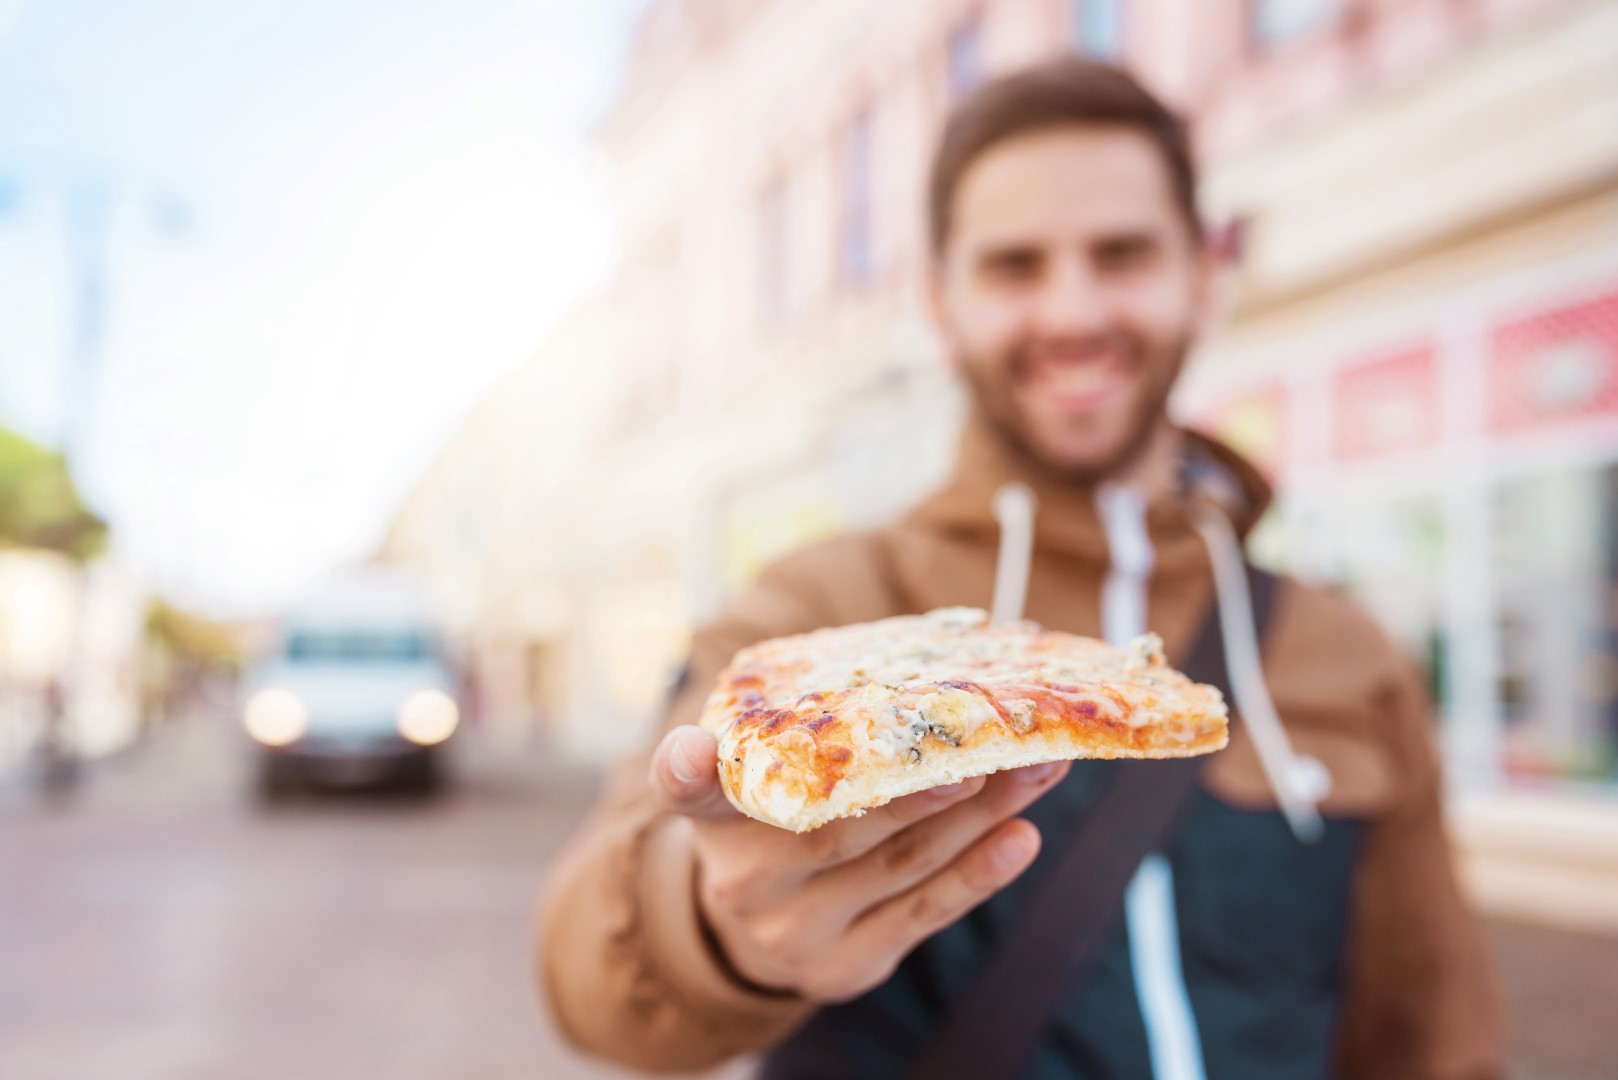 Handsome young man eating a slice of pizza outside on the street